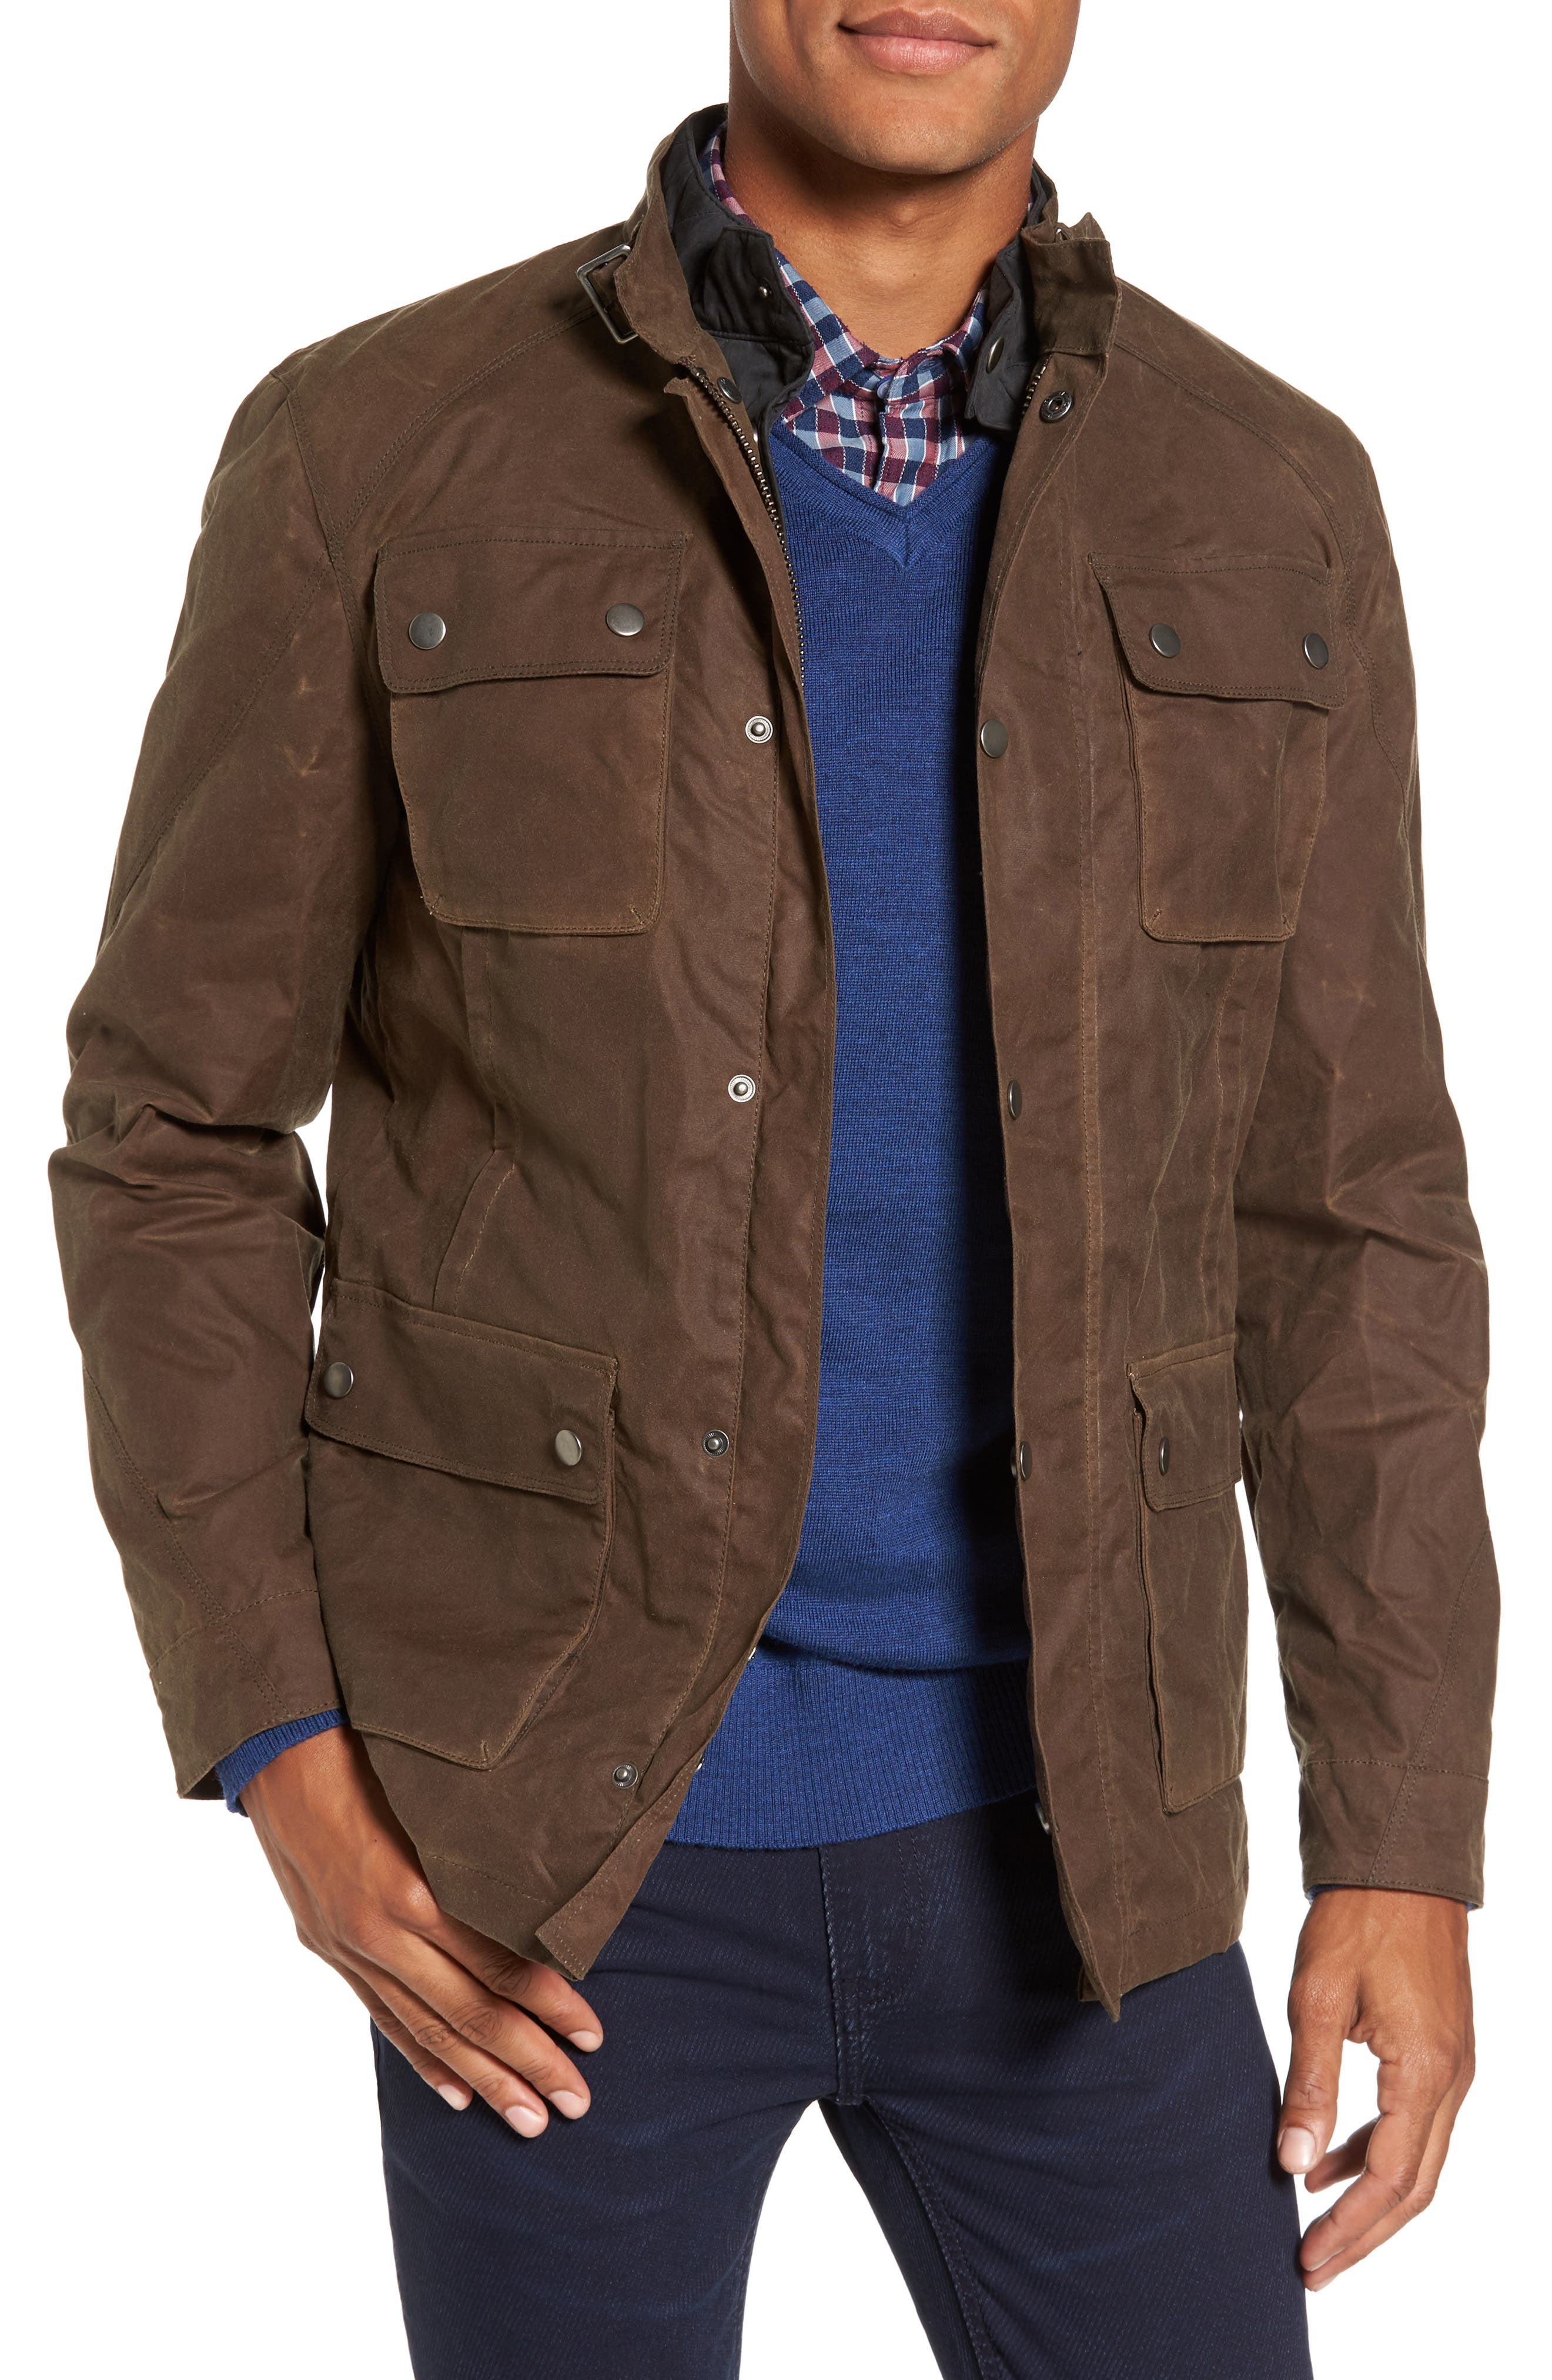 3-in-1 Waxed Cotton Jacket with Removable Vest,                         Main,                         color, 250